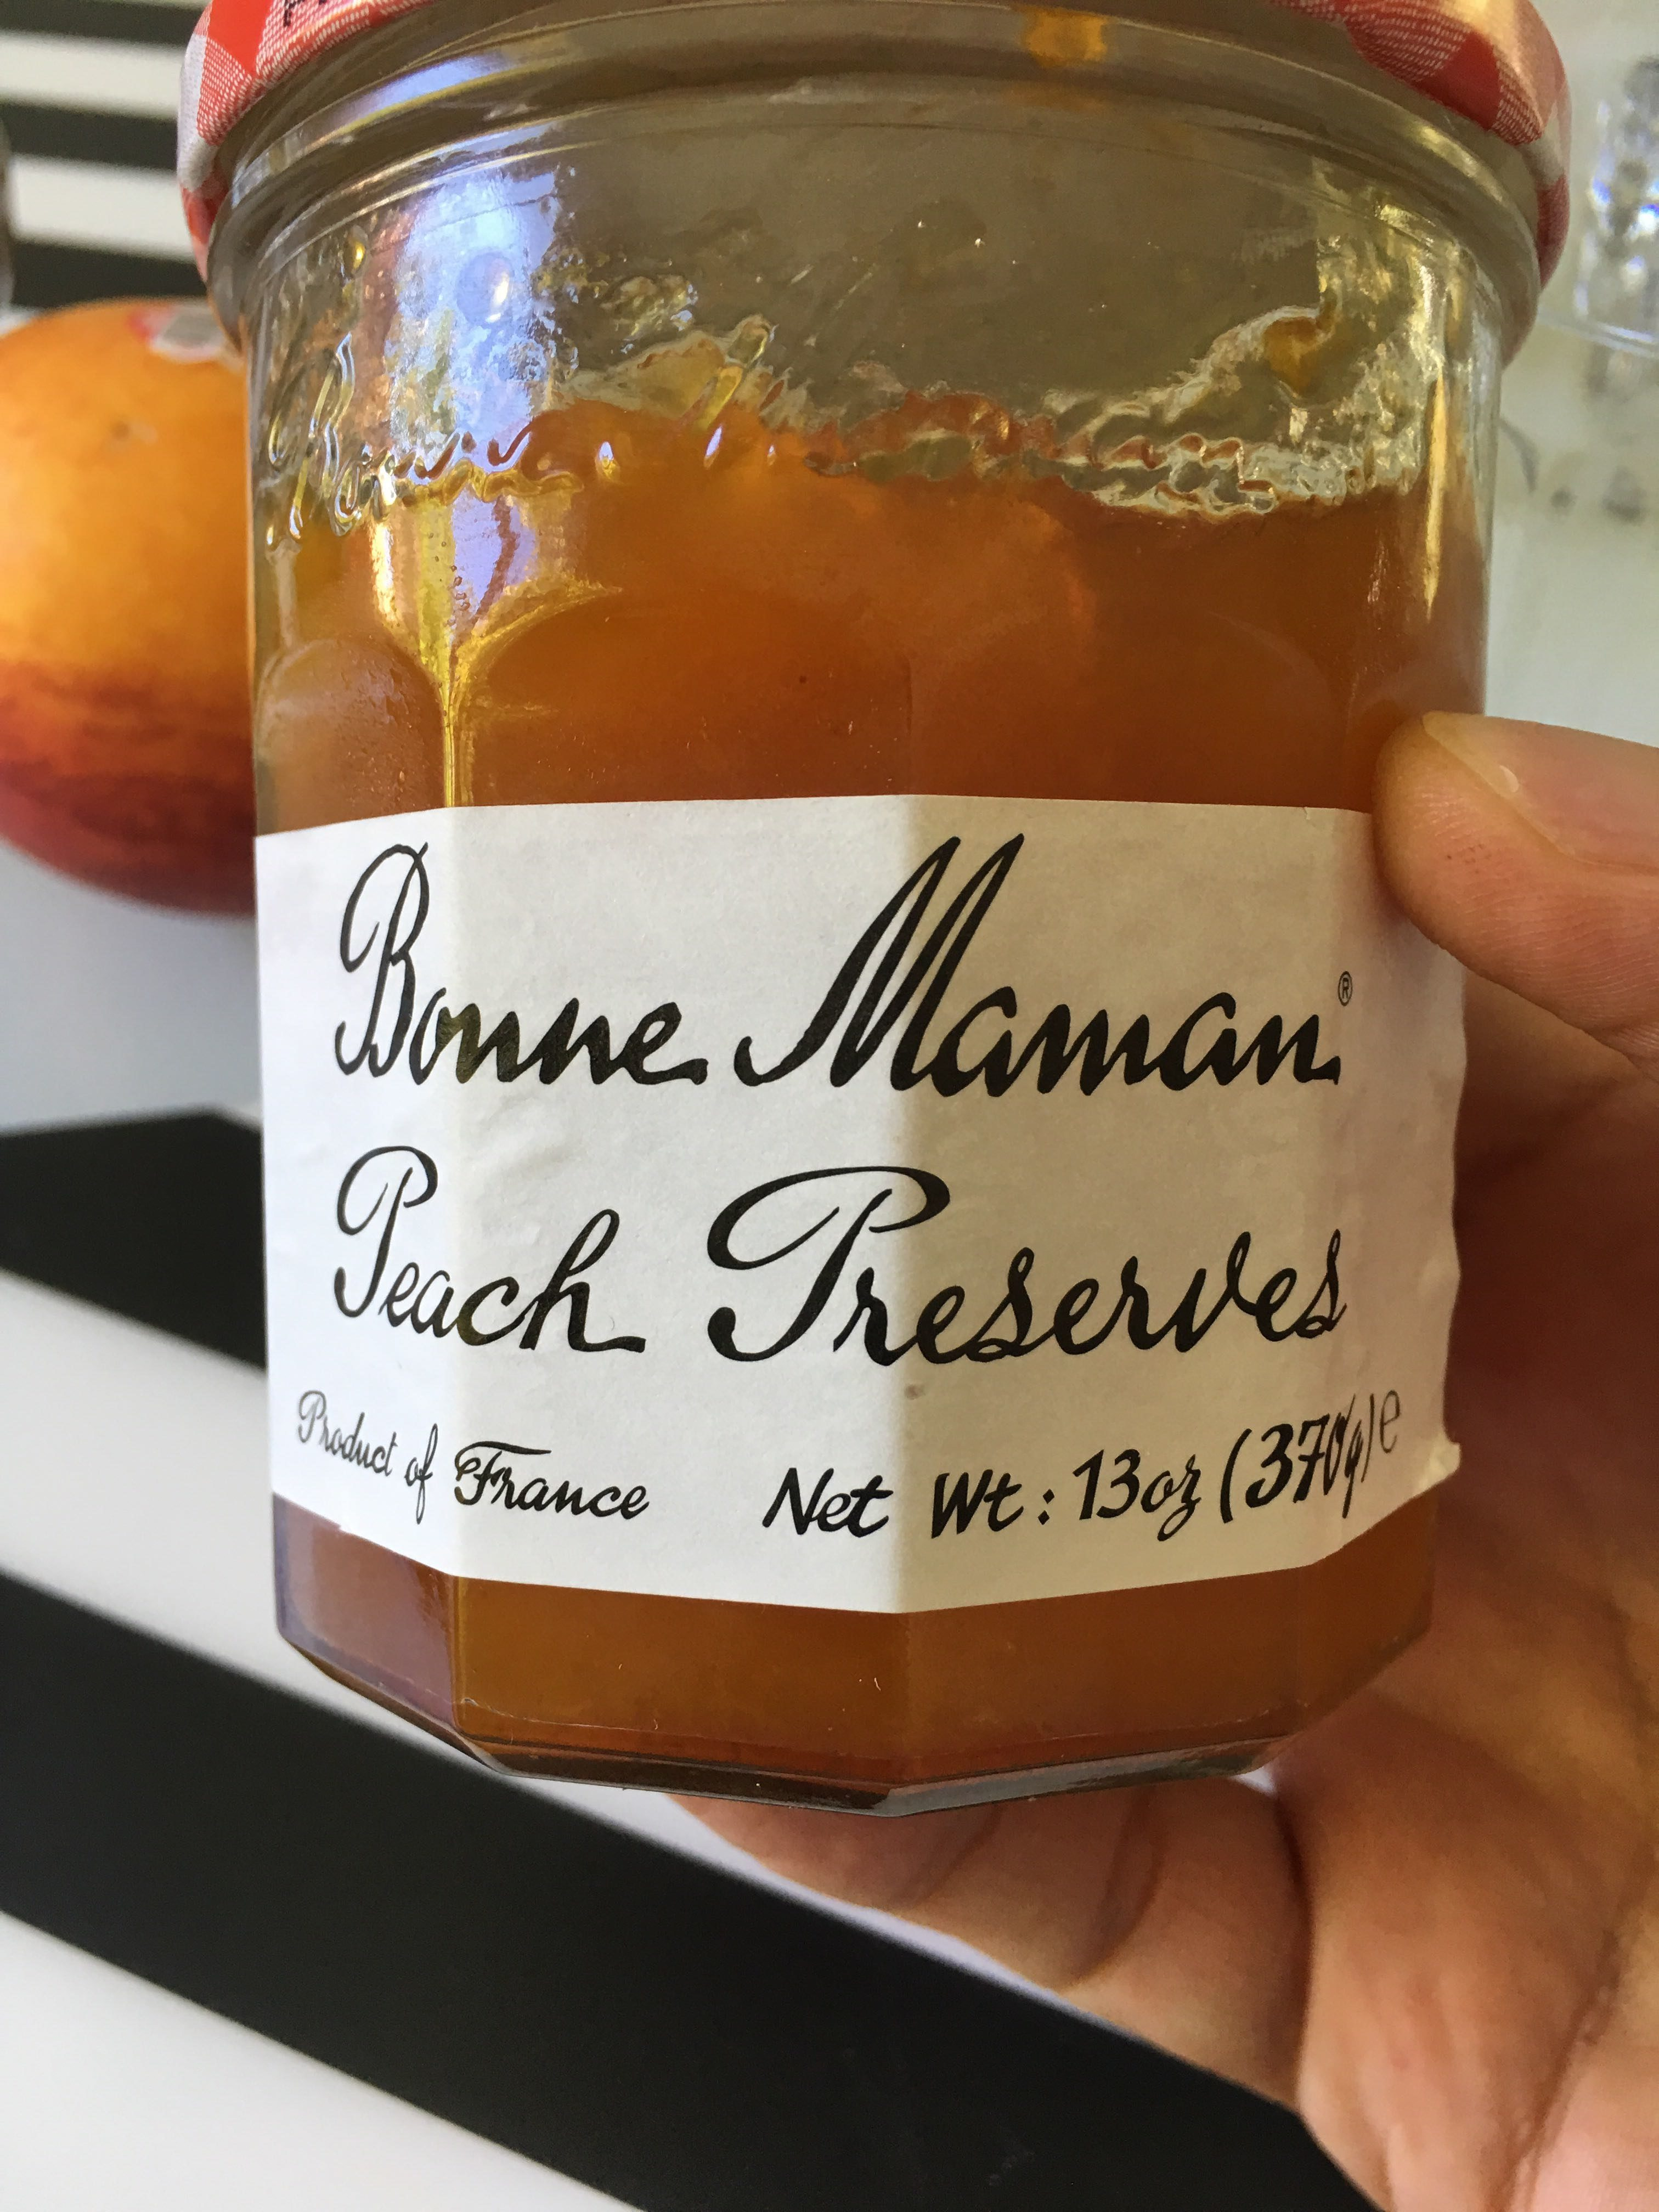 Preserves, Peach - Product